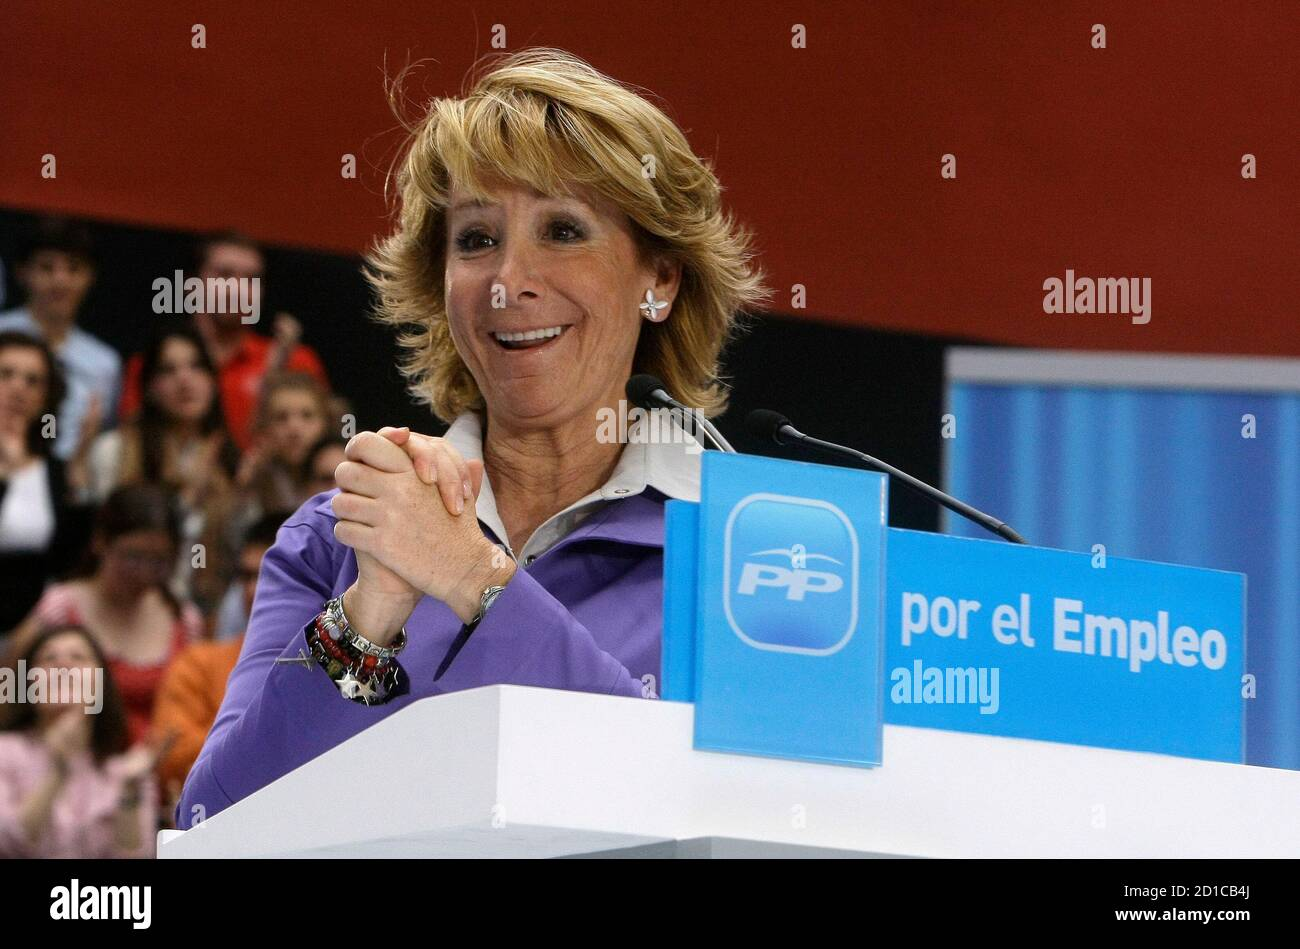 Madrid's regional President Esperanza Aguirre acknowledges applause during a rally about employment in Madrid April 25,  2009.  Banner reads 'For employment'. REUTERS/Andrea Comas (SPAIN POLITICS EMPLOYMENT BUSINESS) Foto de stock